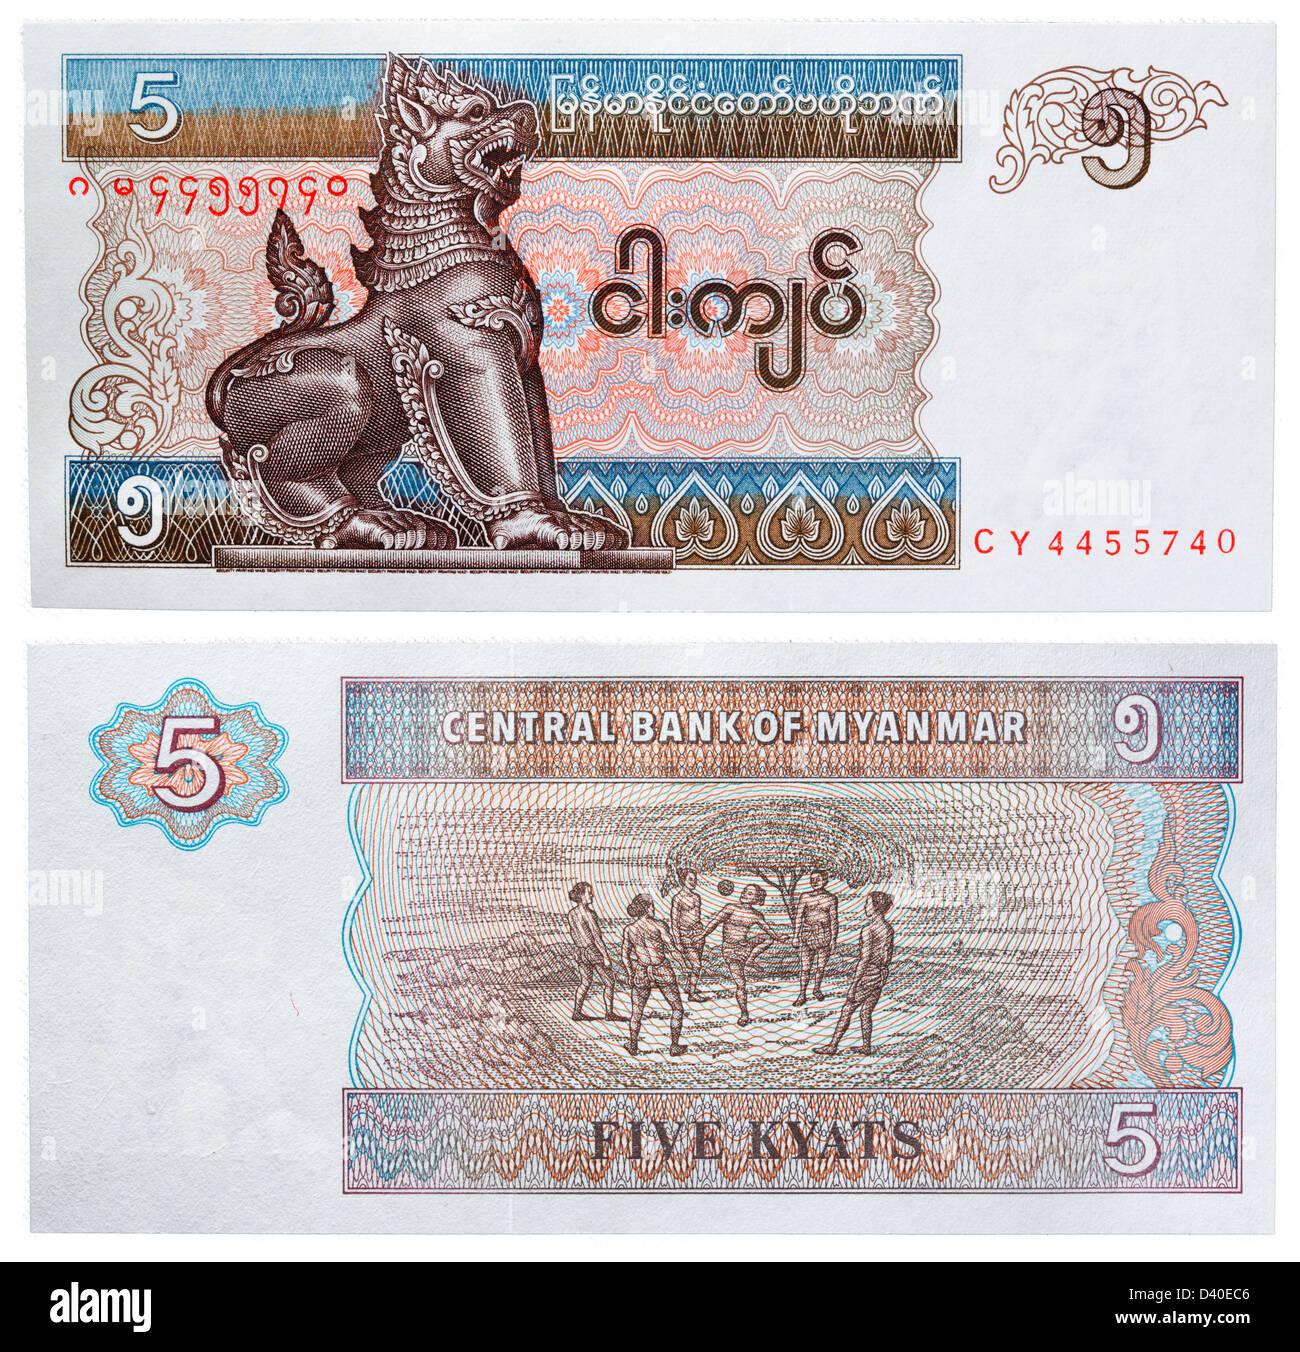 5 Kyats banknote, Mythical animal Chinze and ball game, Myanmar, 1996 - Stock Image